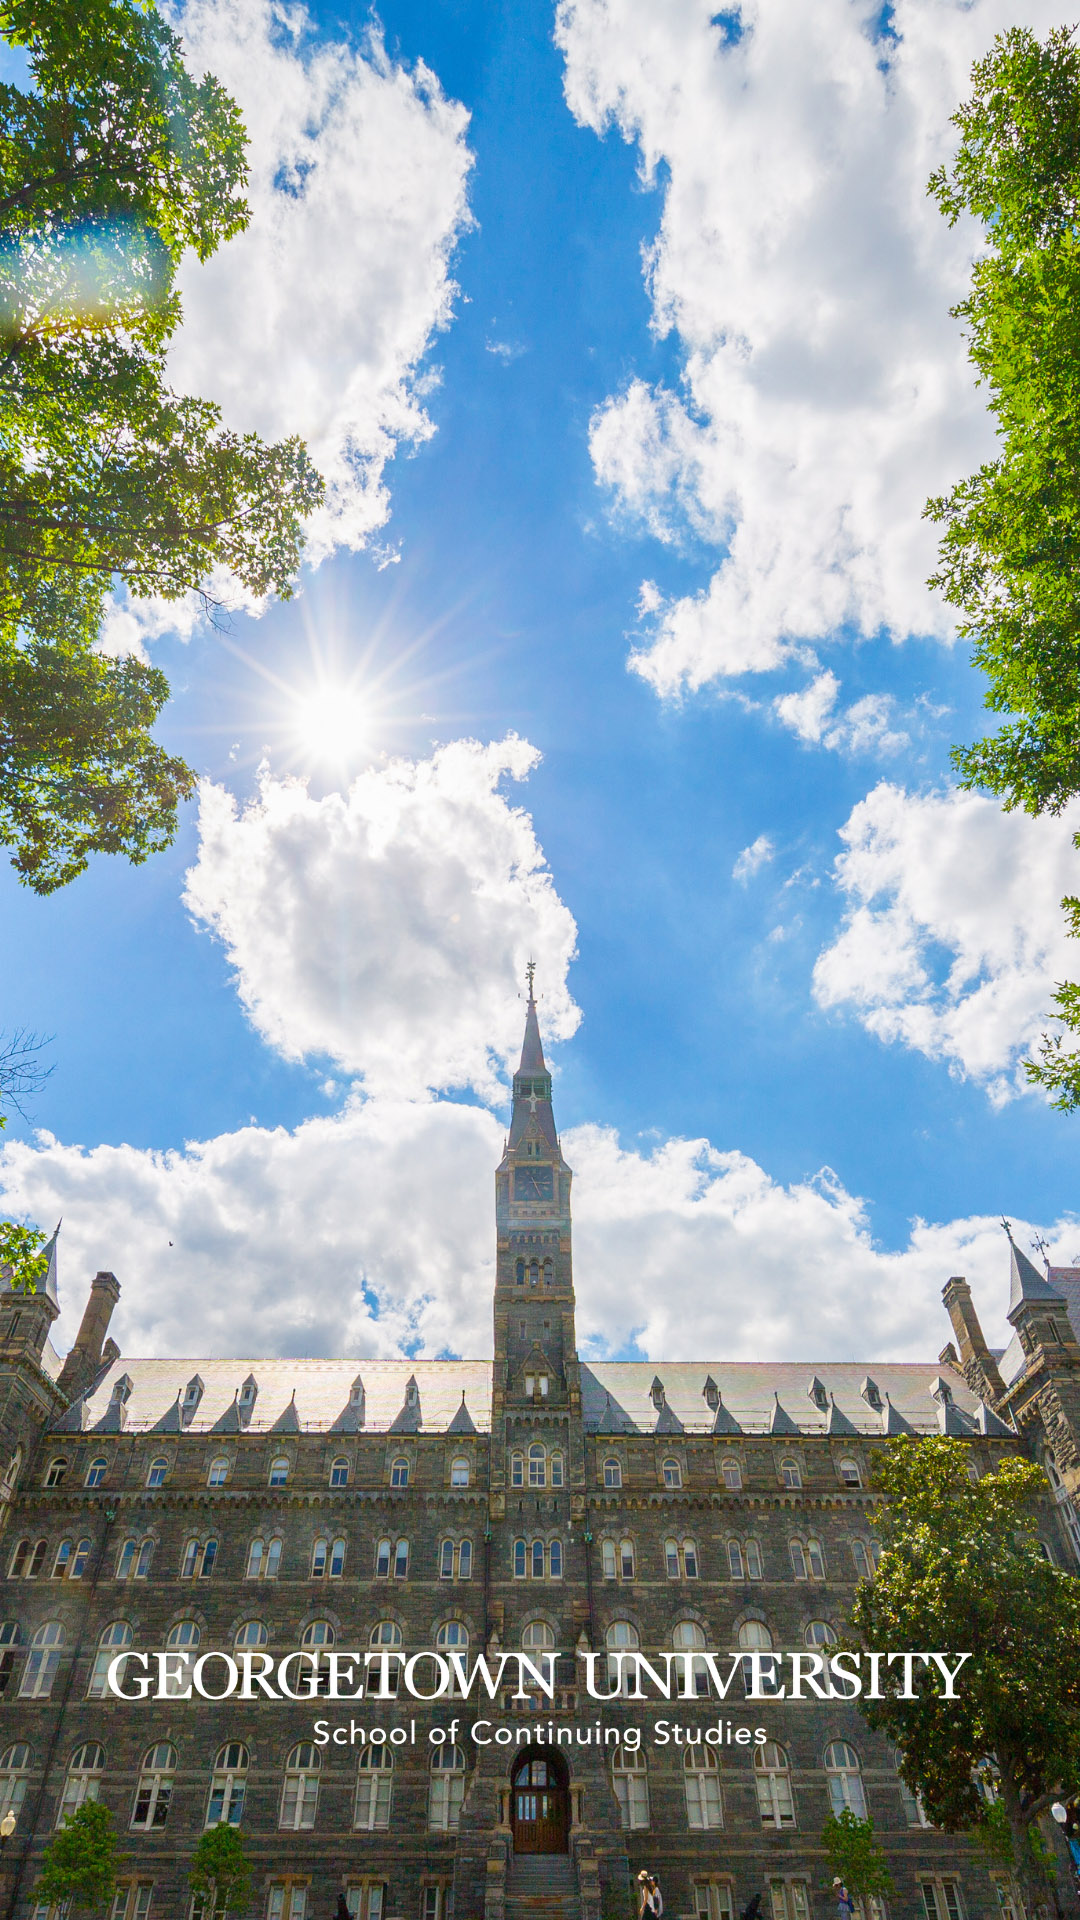 Healy Hall with blue sky